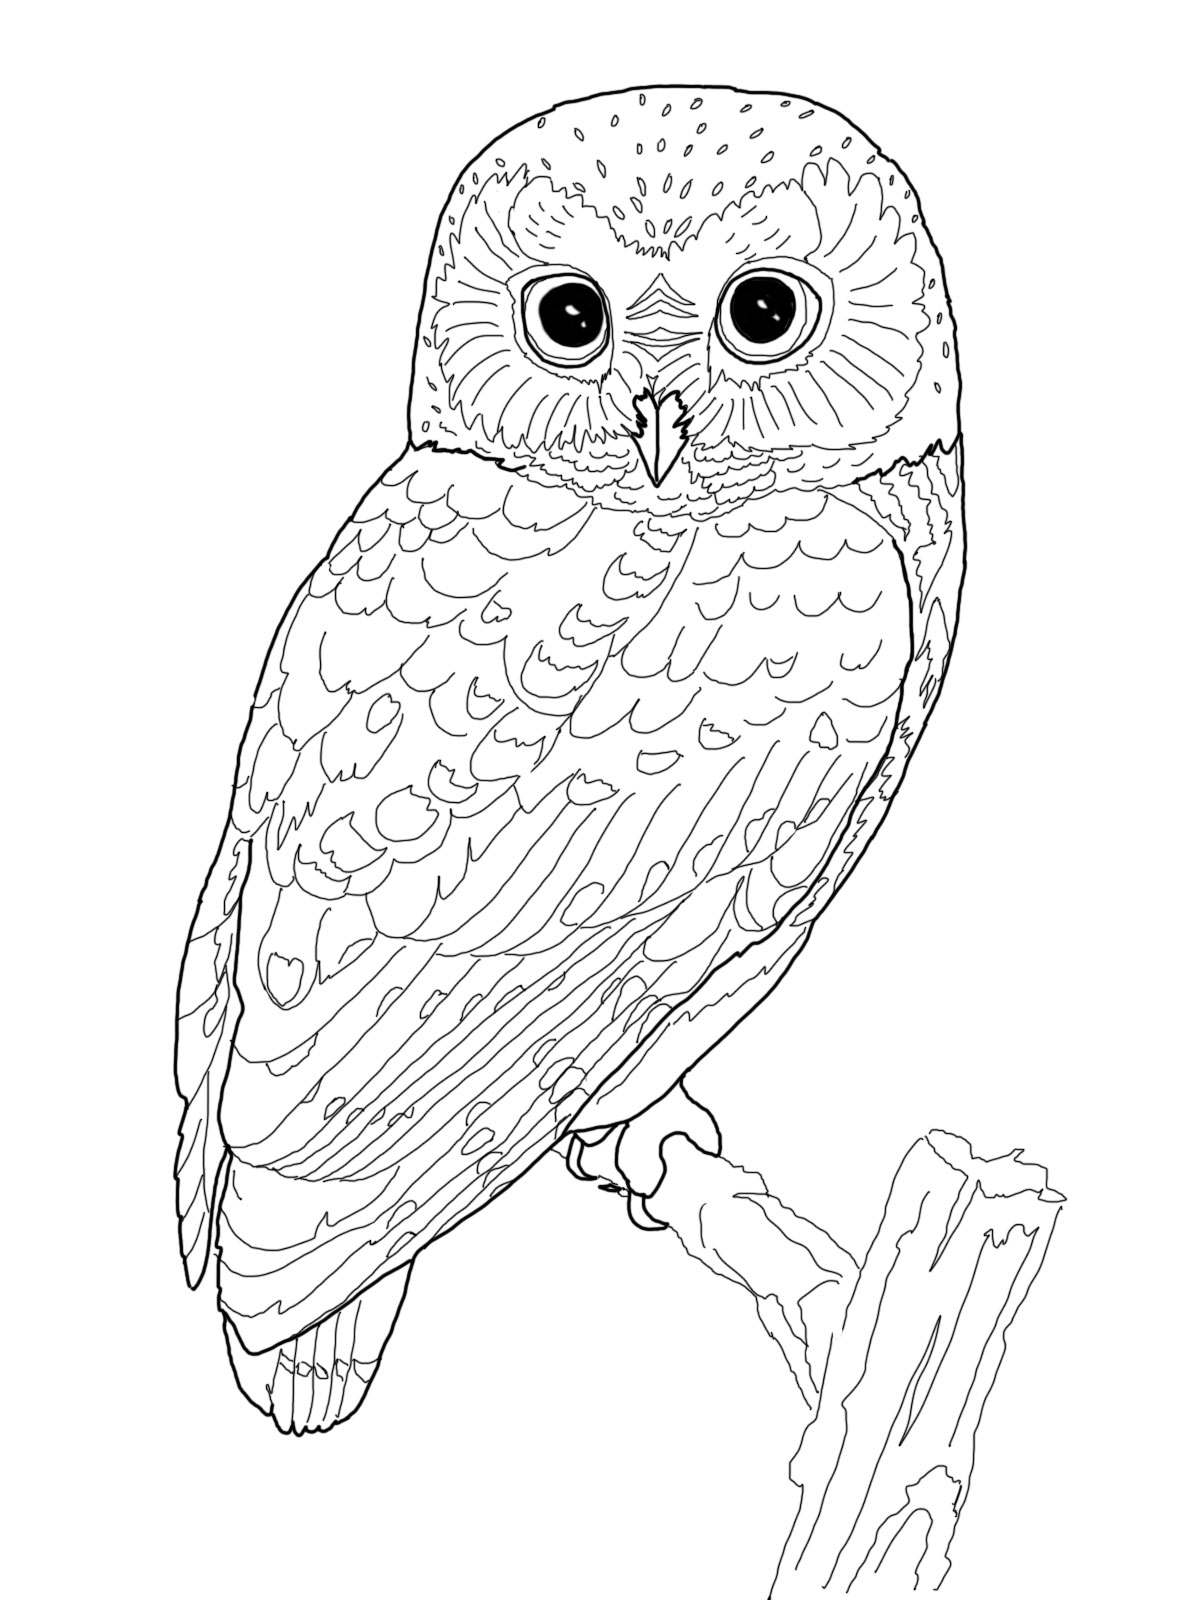 owls coloring pages owl coloring pages for adults free detailed owl coloring coloring owls pages